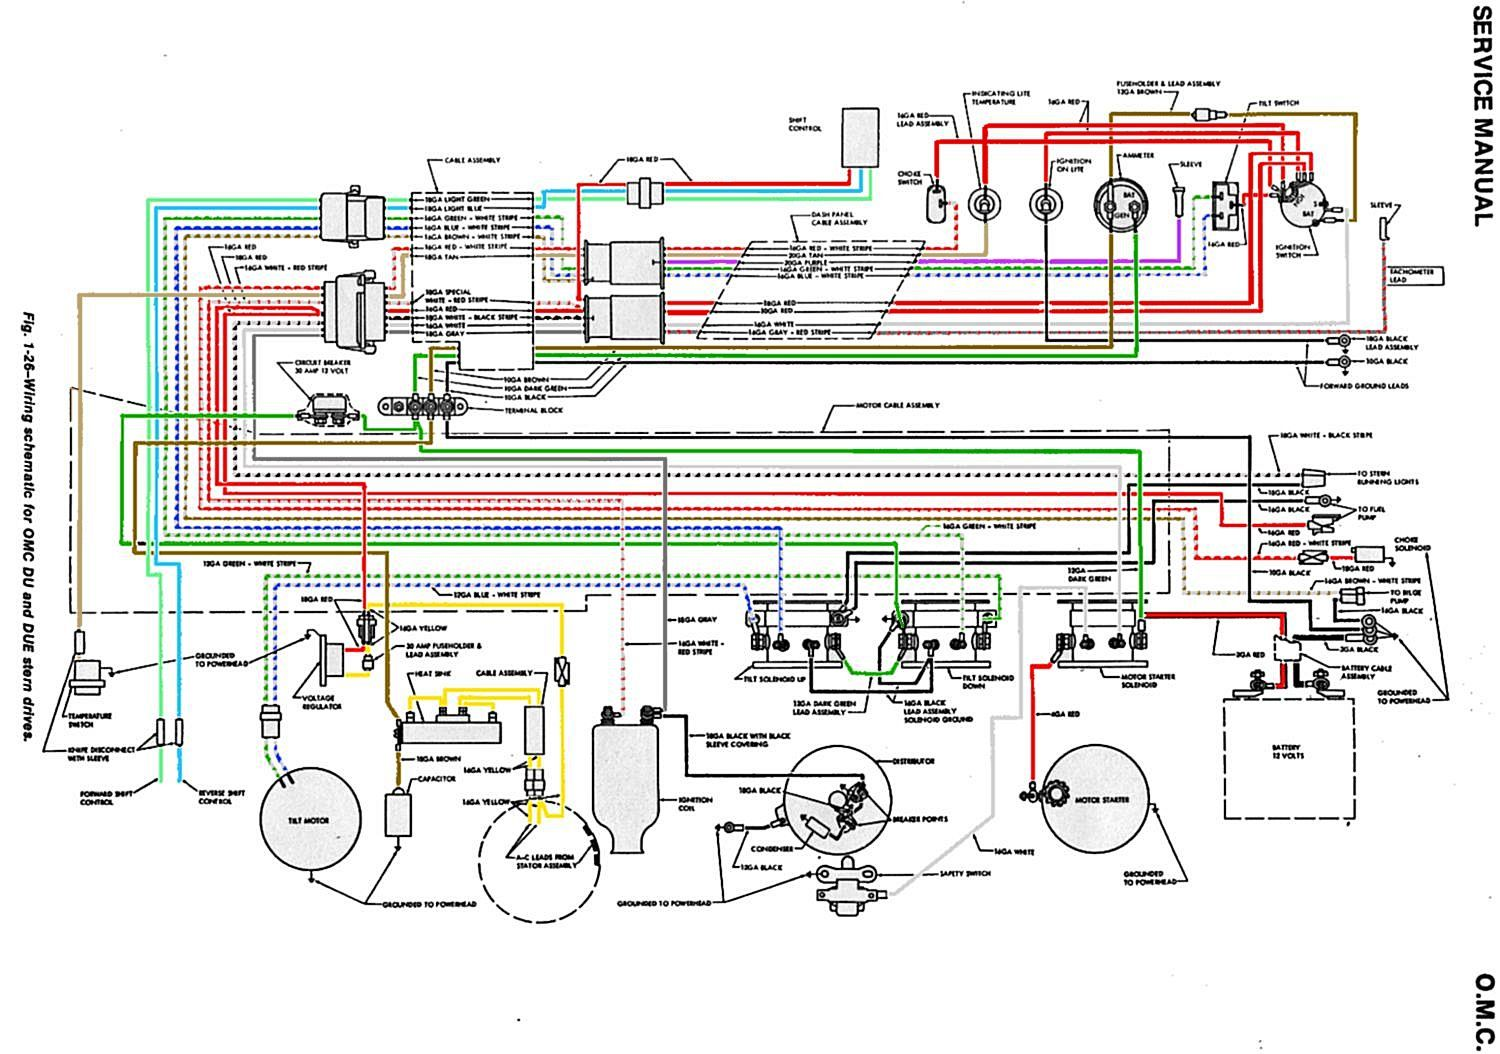 65 68_OMC_Wiring_Schematic omc boat technical info omc wiring harness diagram at virtualis.co